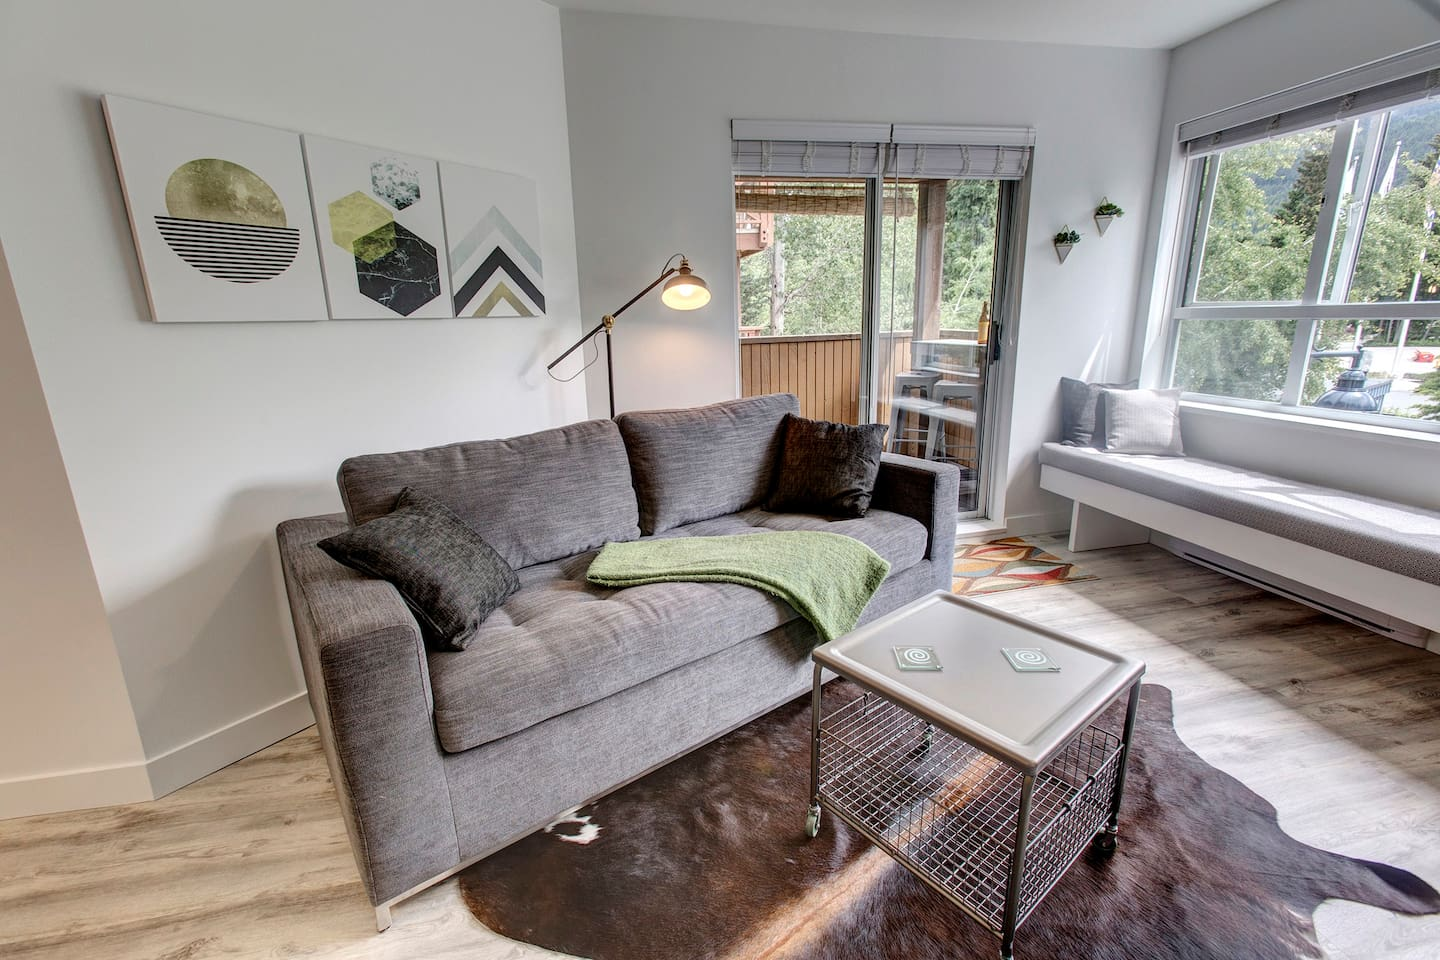 """Super cute little space within walking distance of the gondolas. Convenient location in the village means being able to walk to all the best restaurants and bars around after hitting the slopes. Highly recommend this place!"""